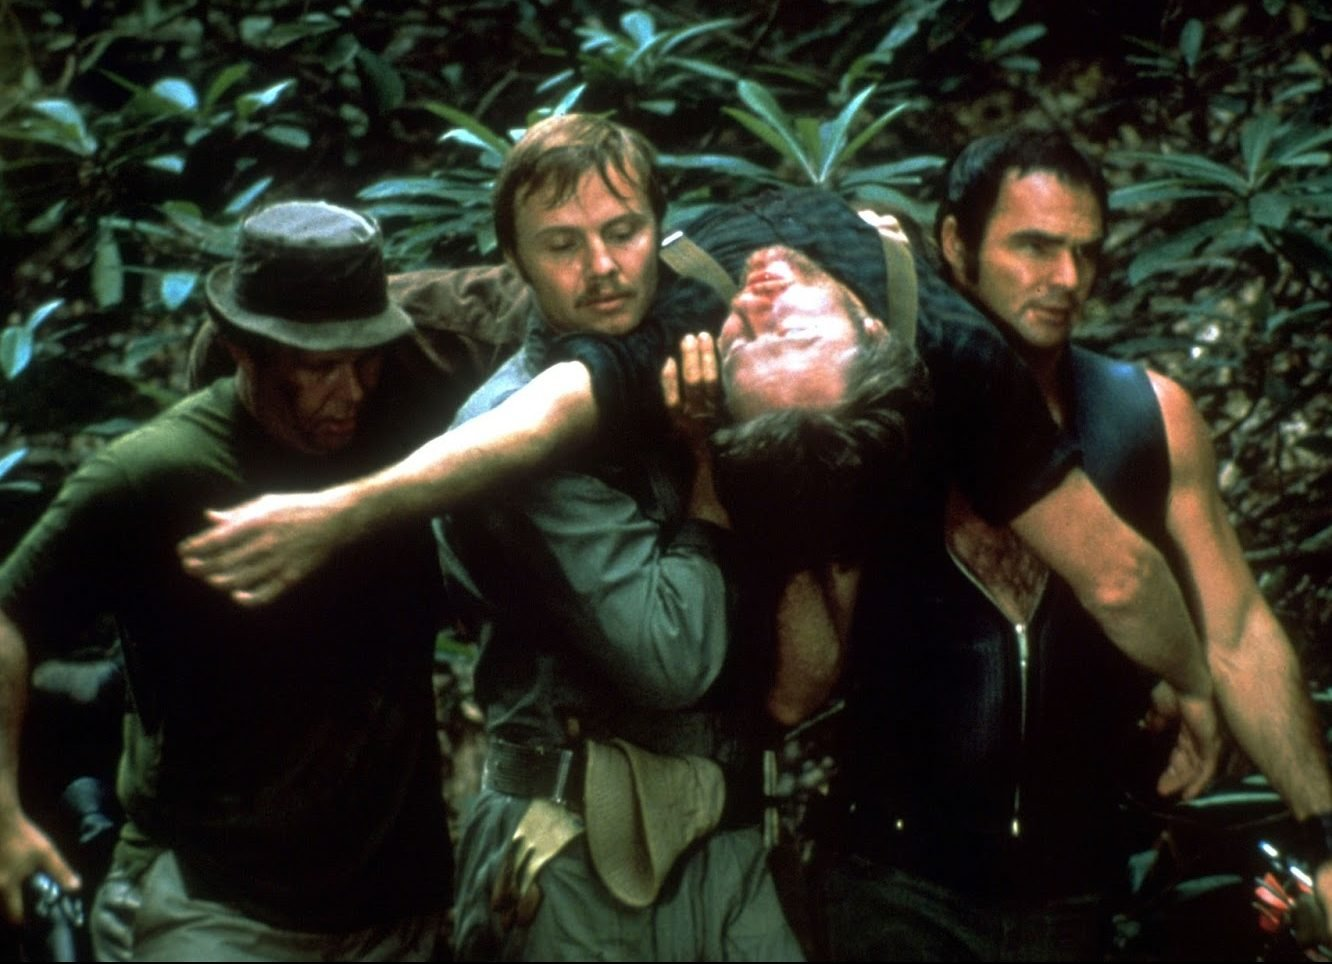 deliverance web1 e1631092393111 10 Thrilling Facts You Might Not Have Known About Deliverance